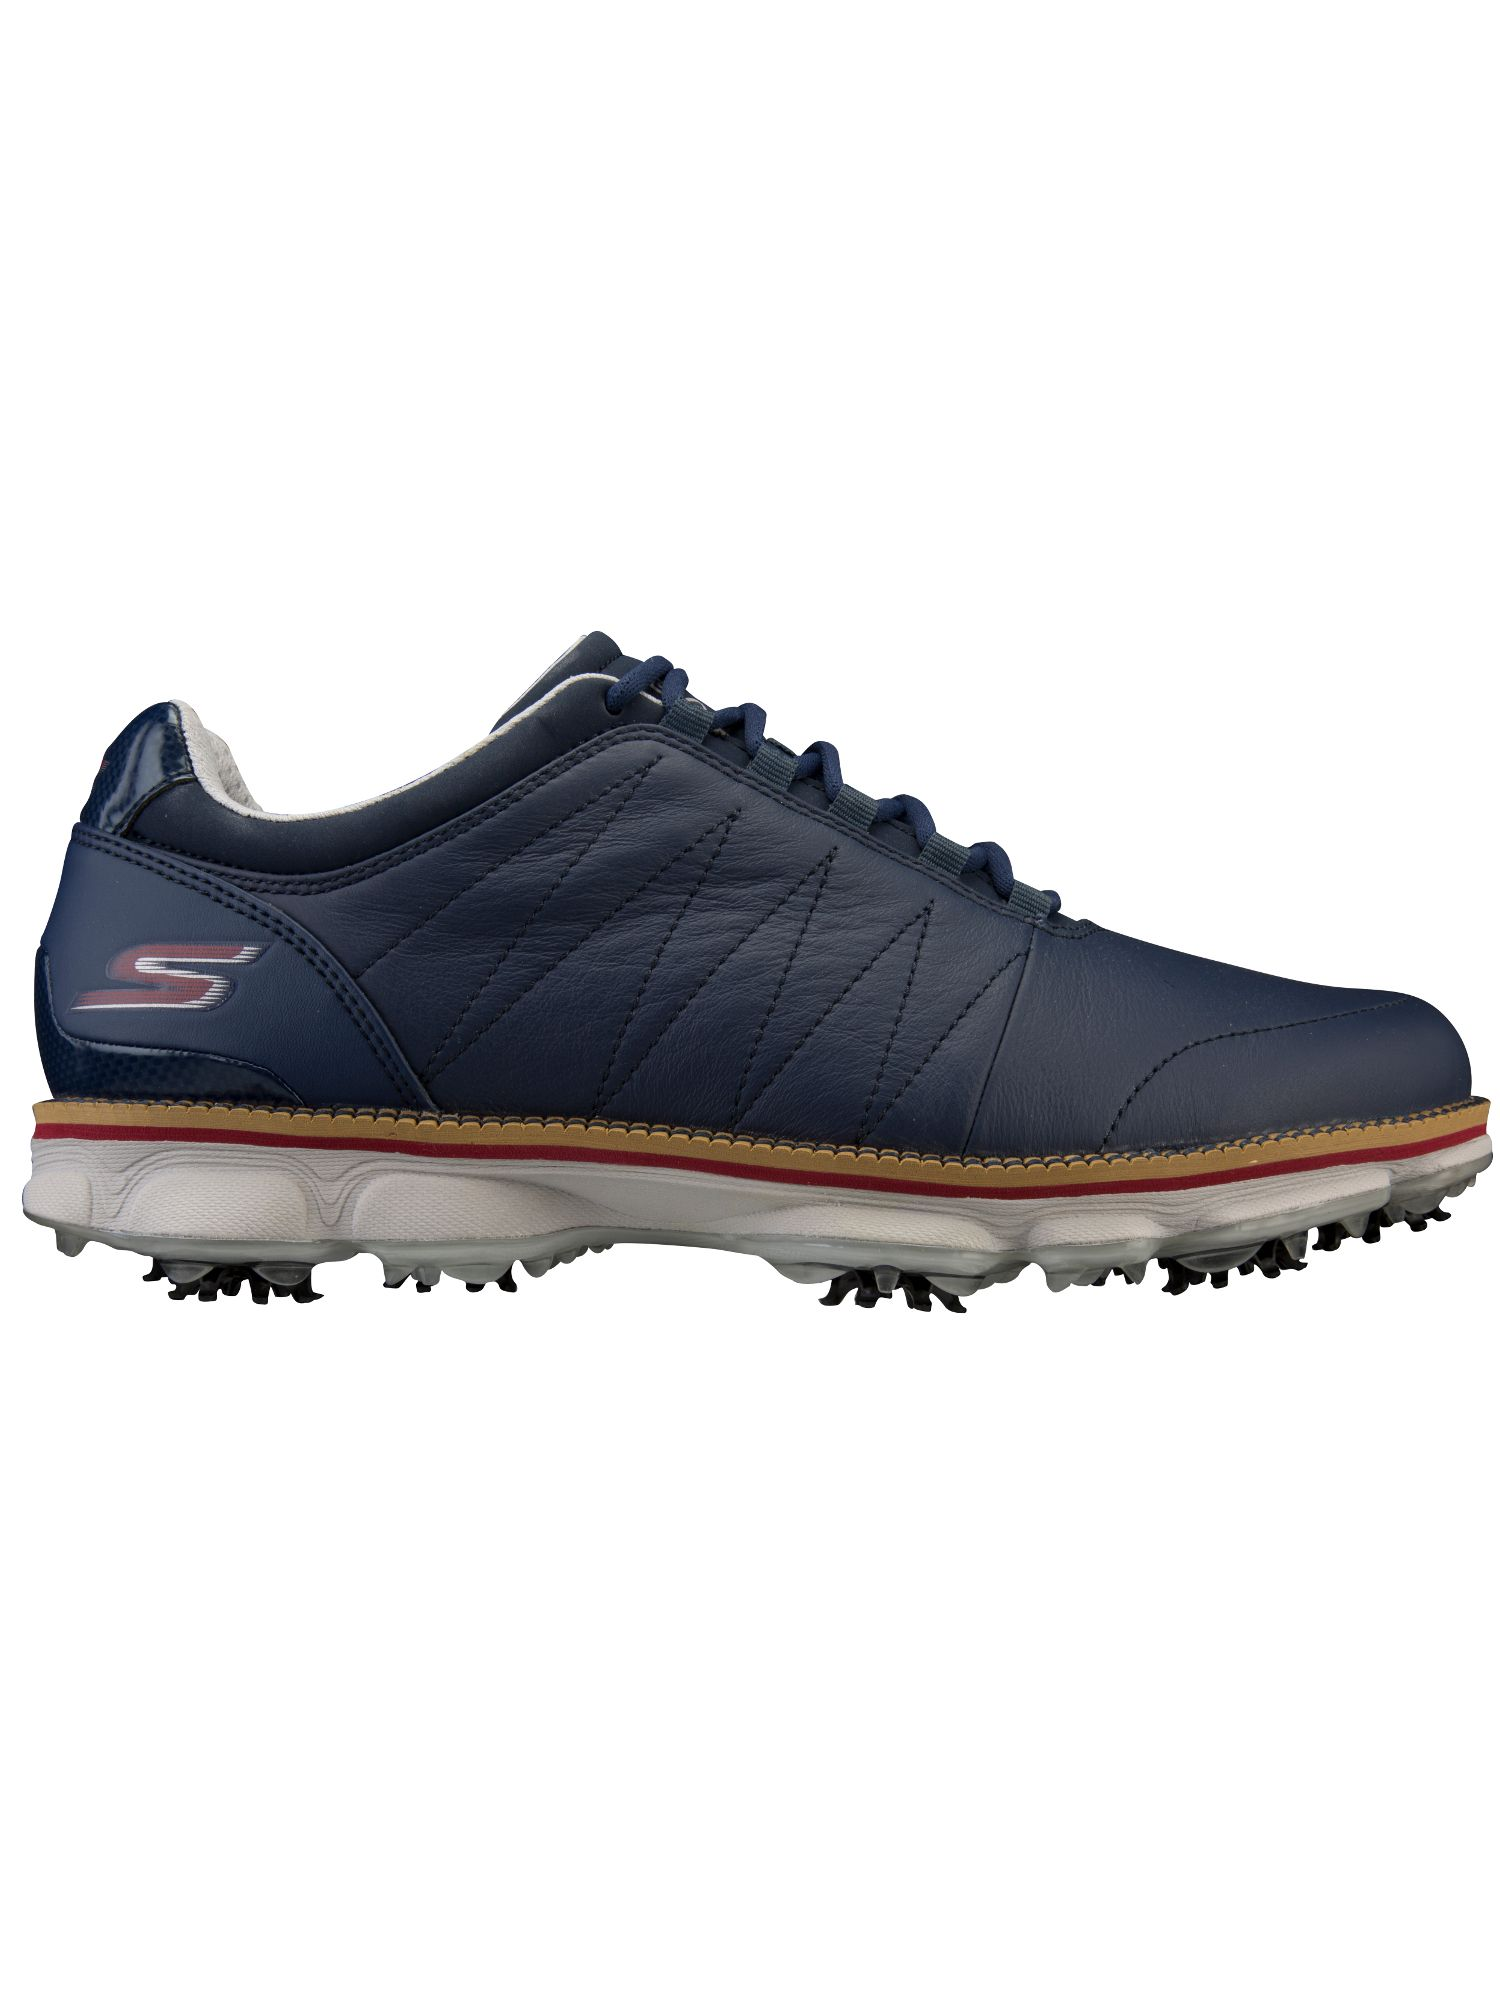 Rubber golf tee shop for cheap golf and save online for Classic house golf shoes